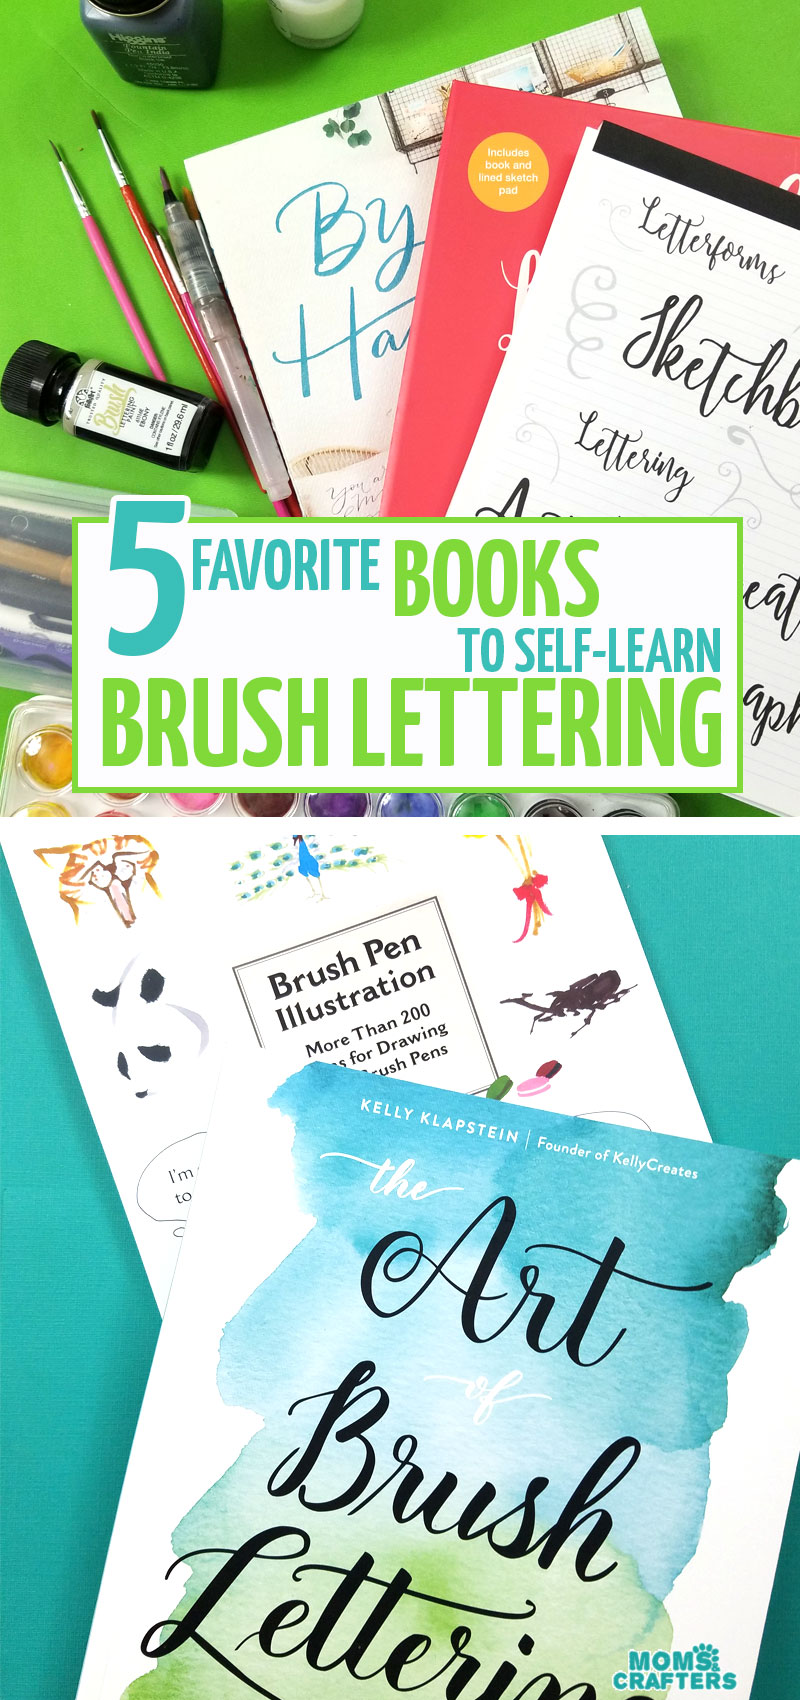 Click if you want to learn how to do brush lettering and calligraphy! I share the best brush lettering books for beginners, including practice pads and sheets #brushlettering #calligraphy #diy